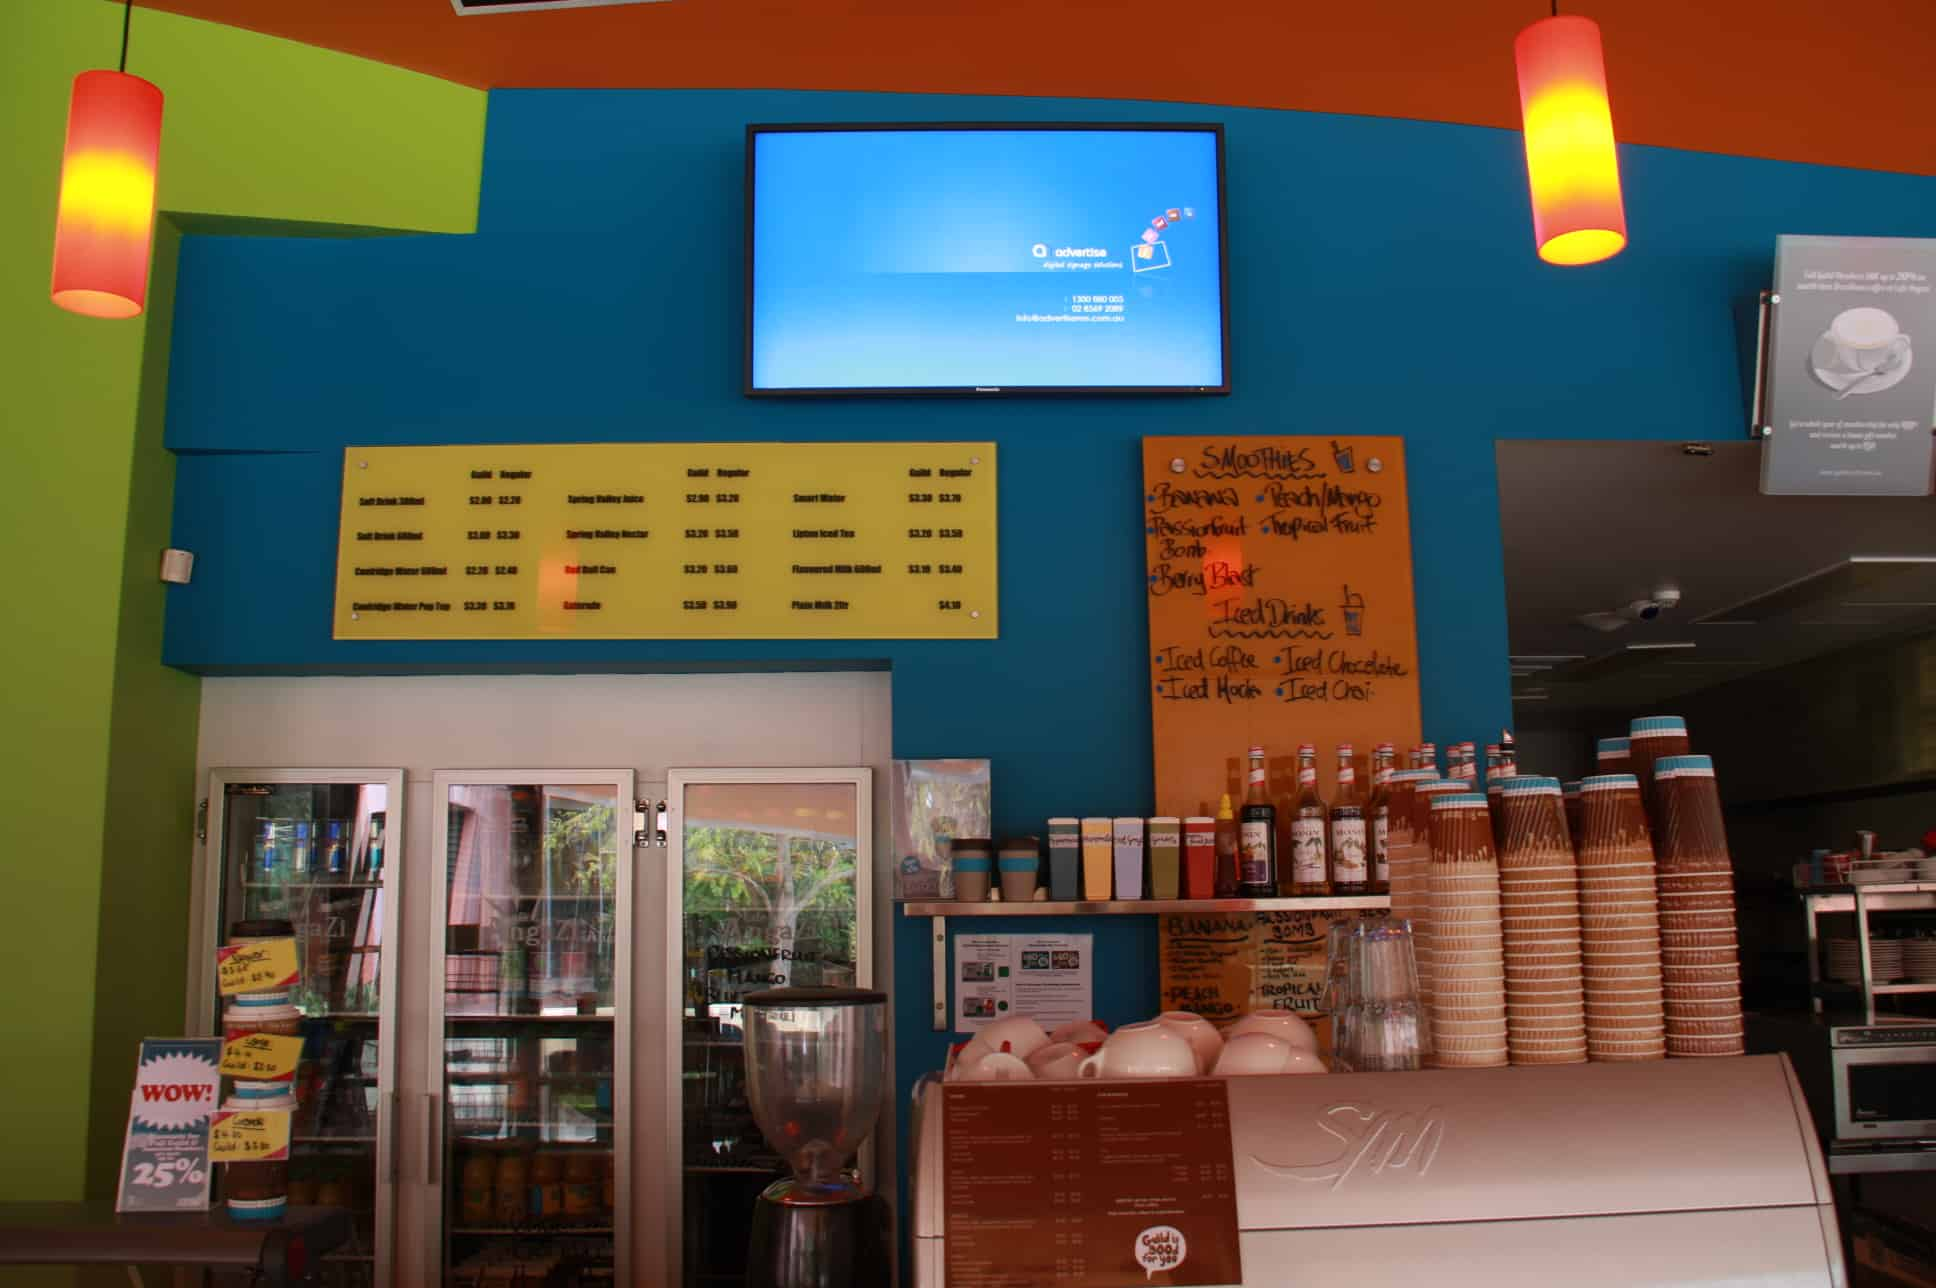 Advertise Me - Digital Signage Curtin Student Guild